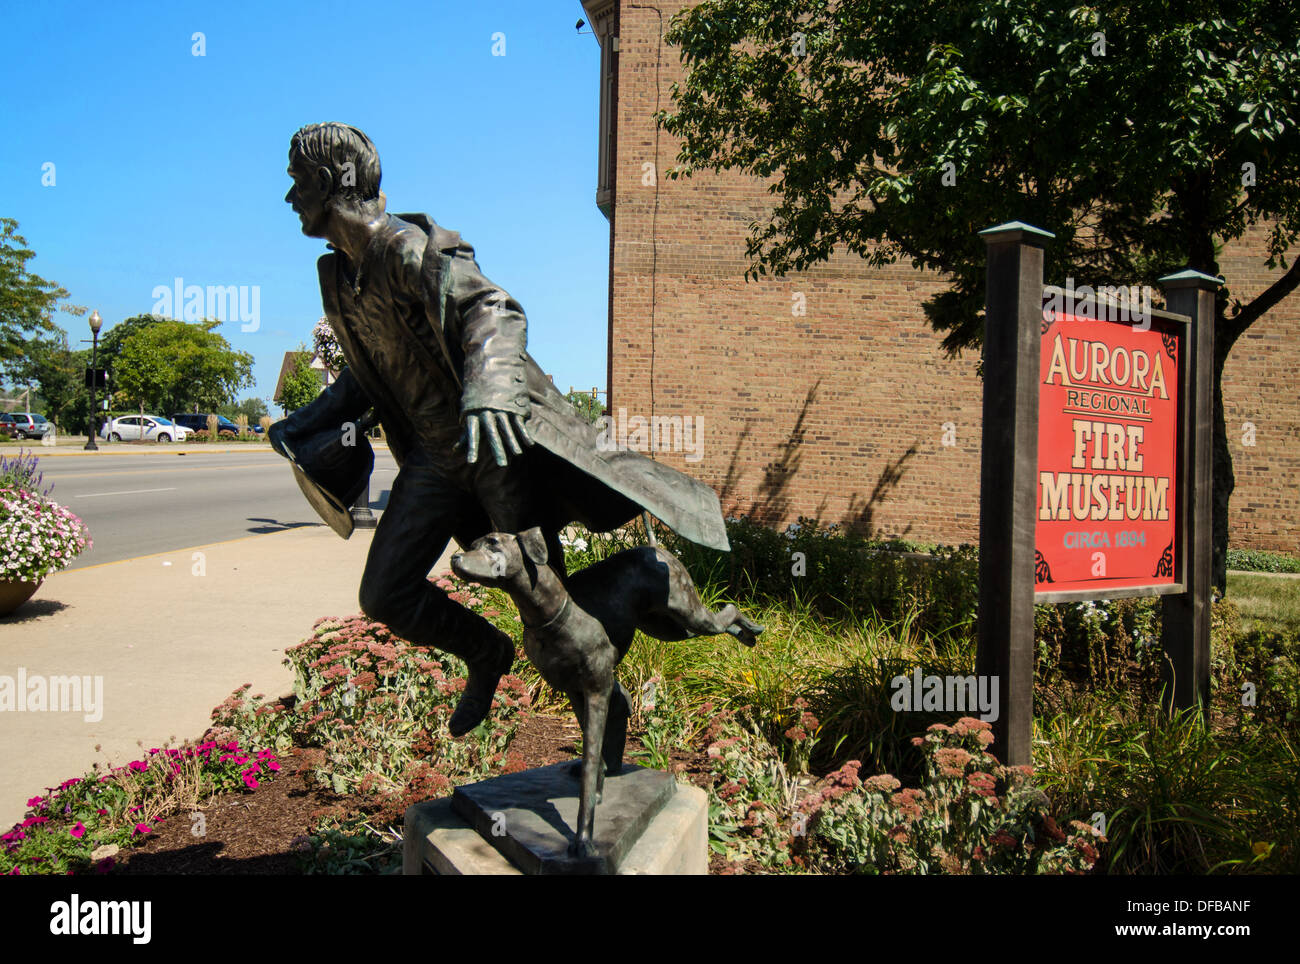 statue of a firefighter and fire safety dog at the aurora regional